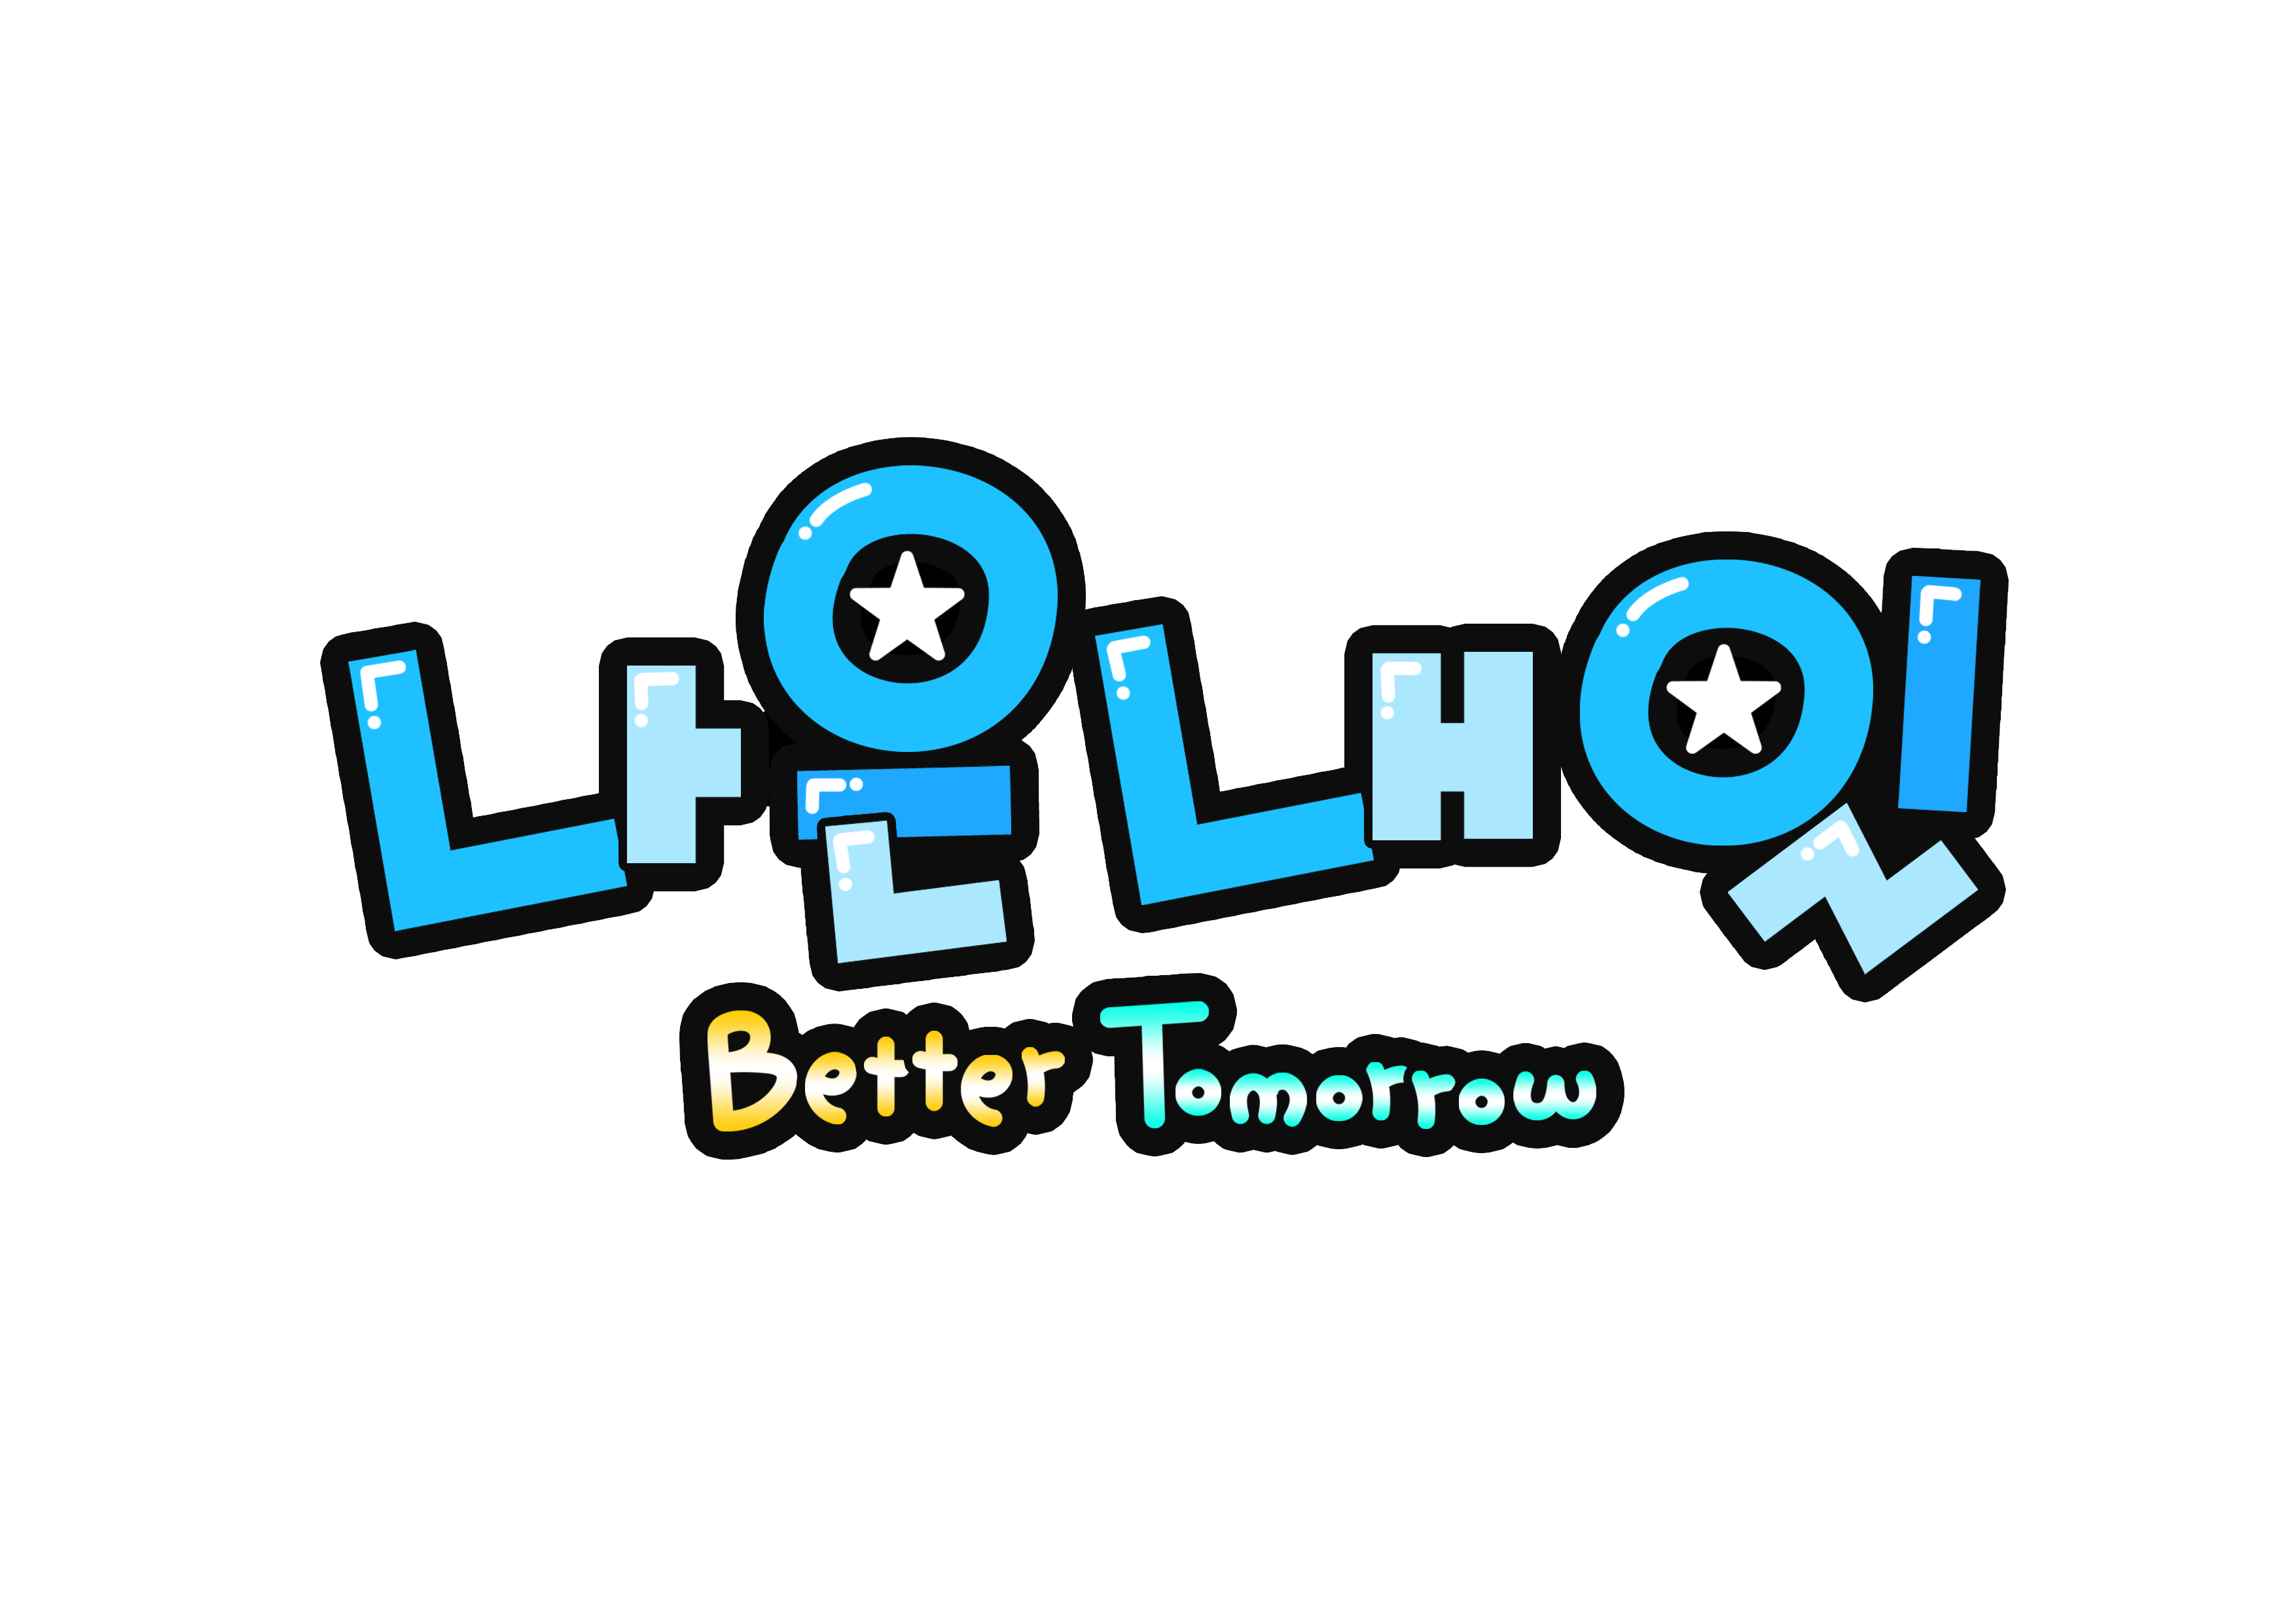 나은내일 Better Tomorrow